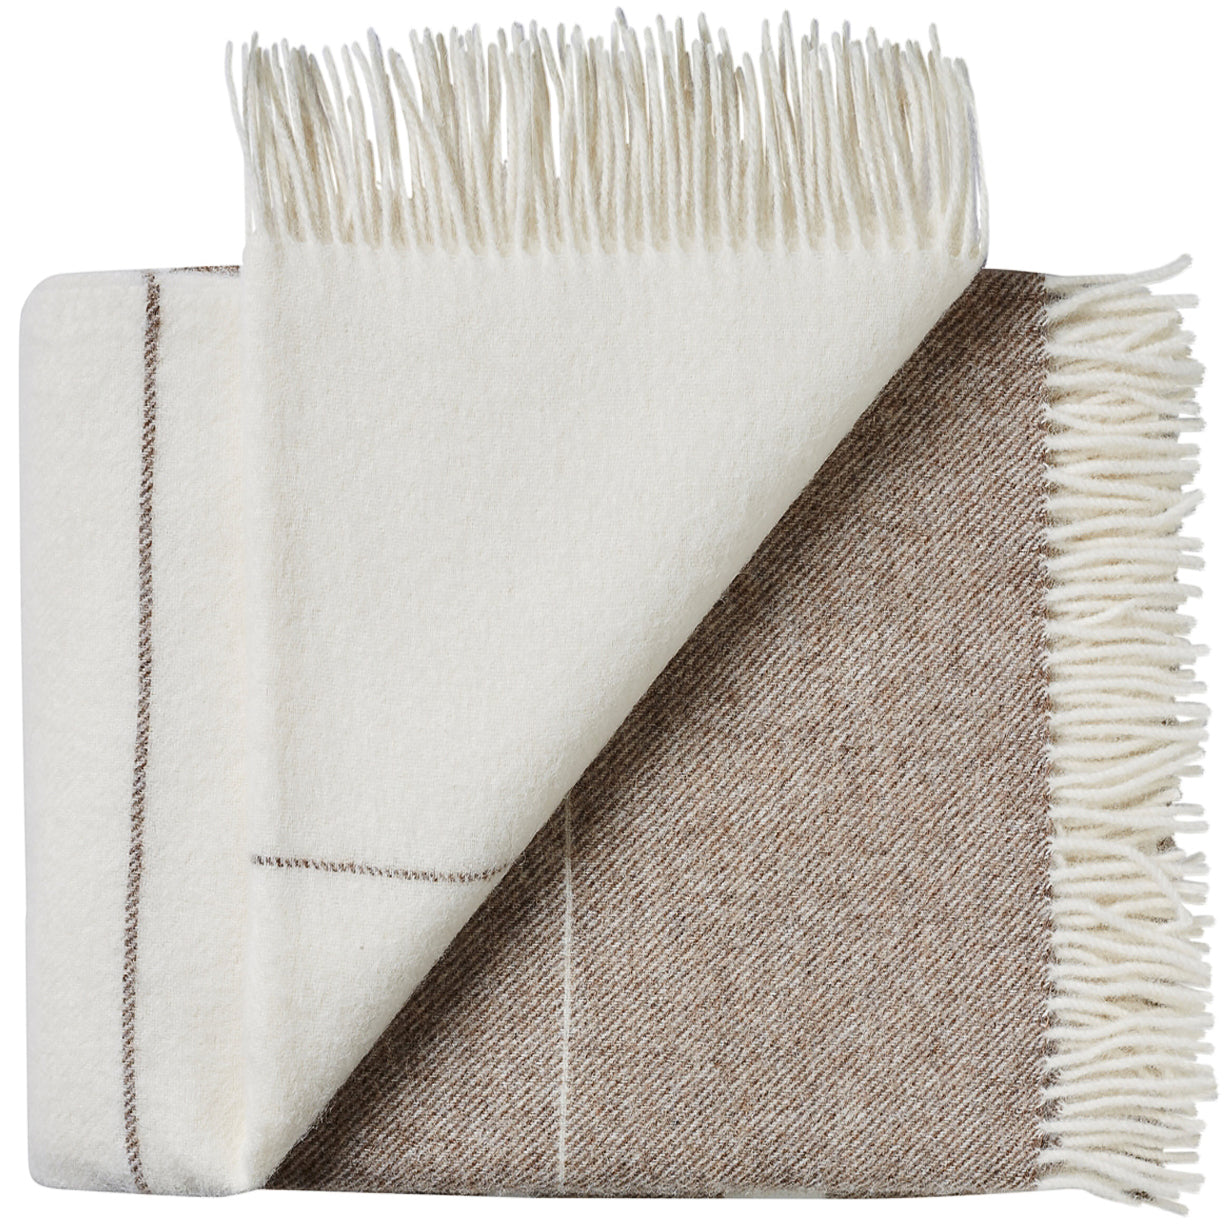 Soft Alpaca Wool Throw Blanket White and Tan Brown Stripes